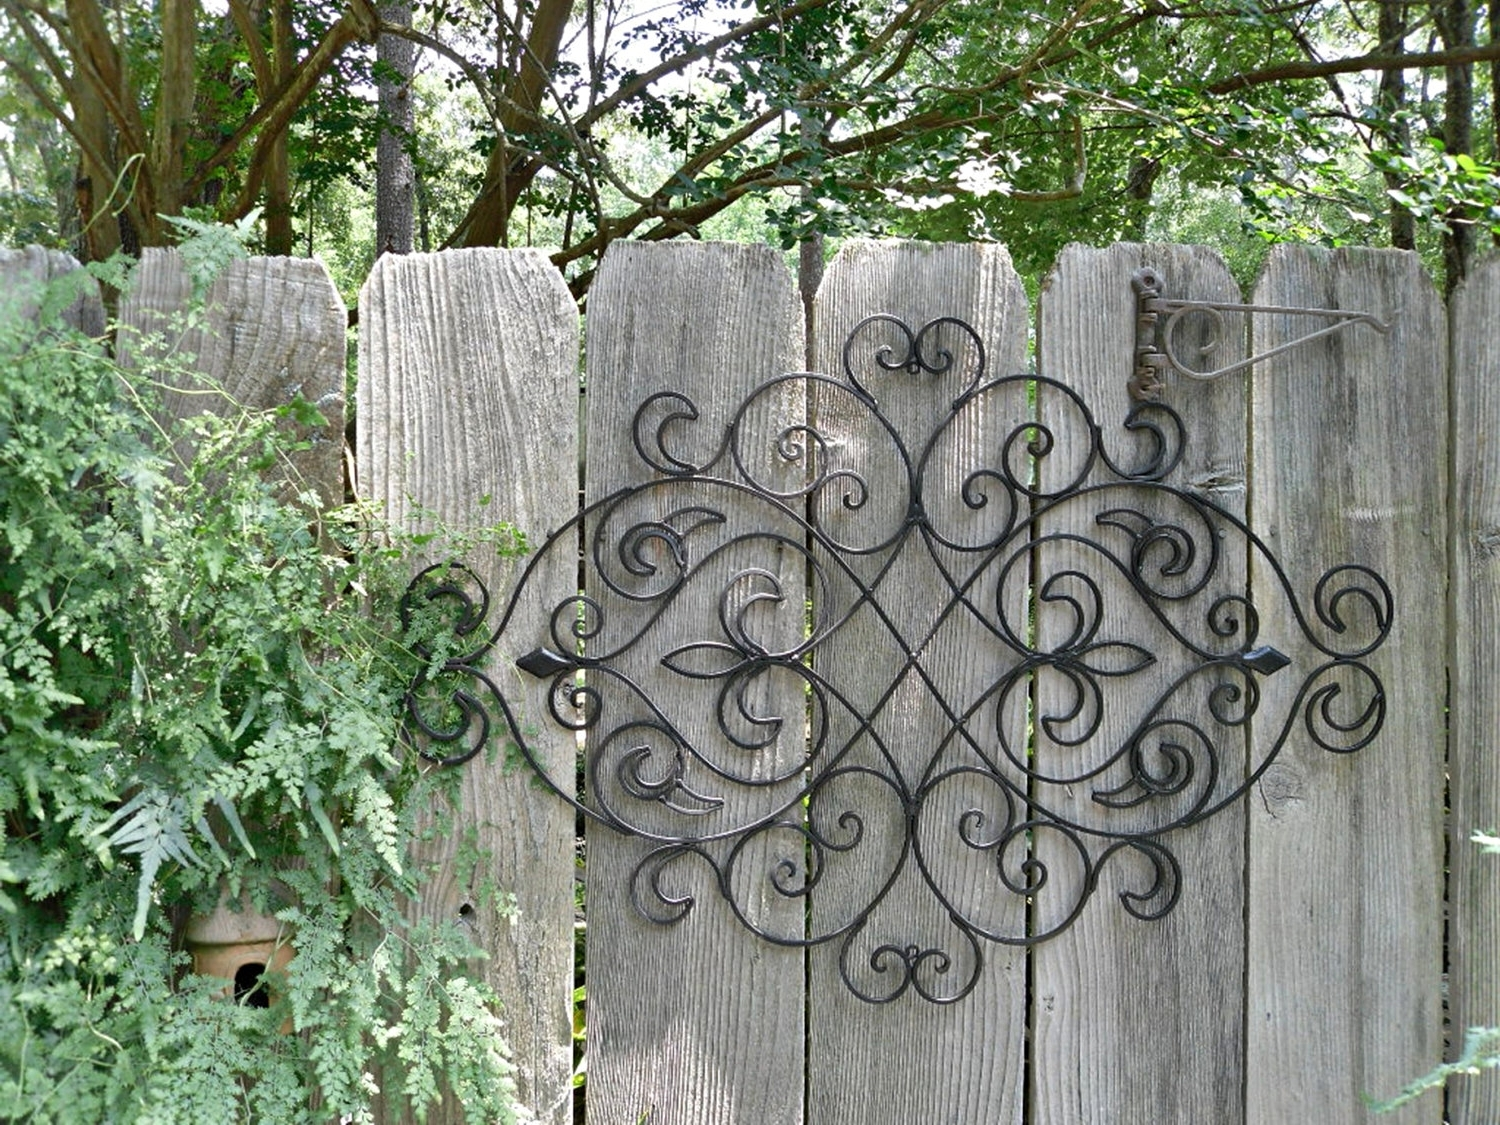 Wrought Iron With Regard To 2018 Outdoor Metal Art For Walls (View 13 of 15)